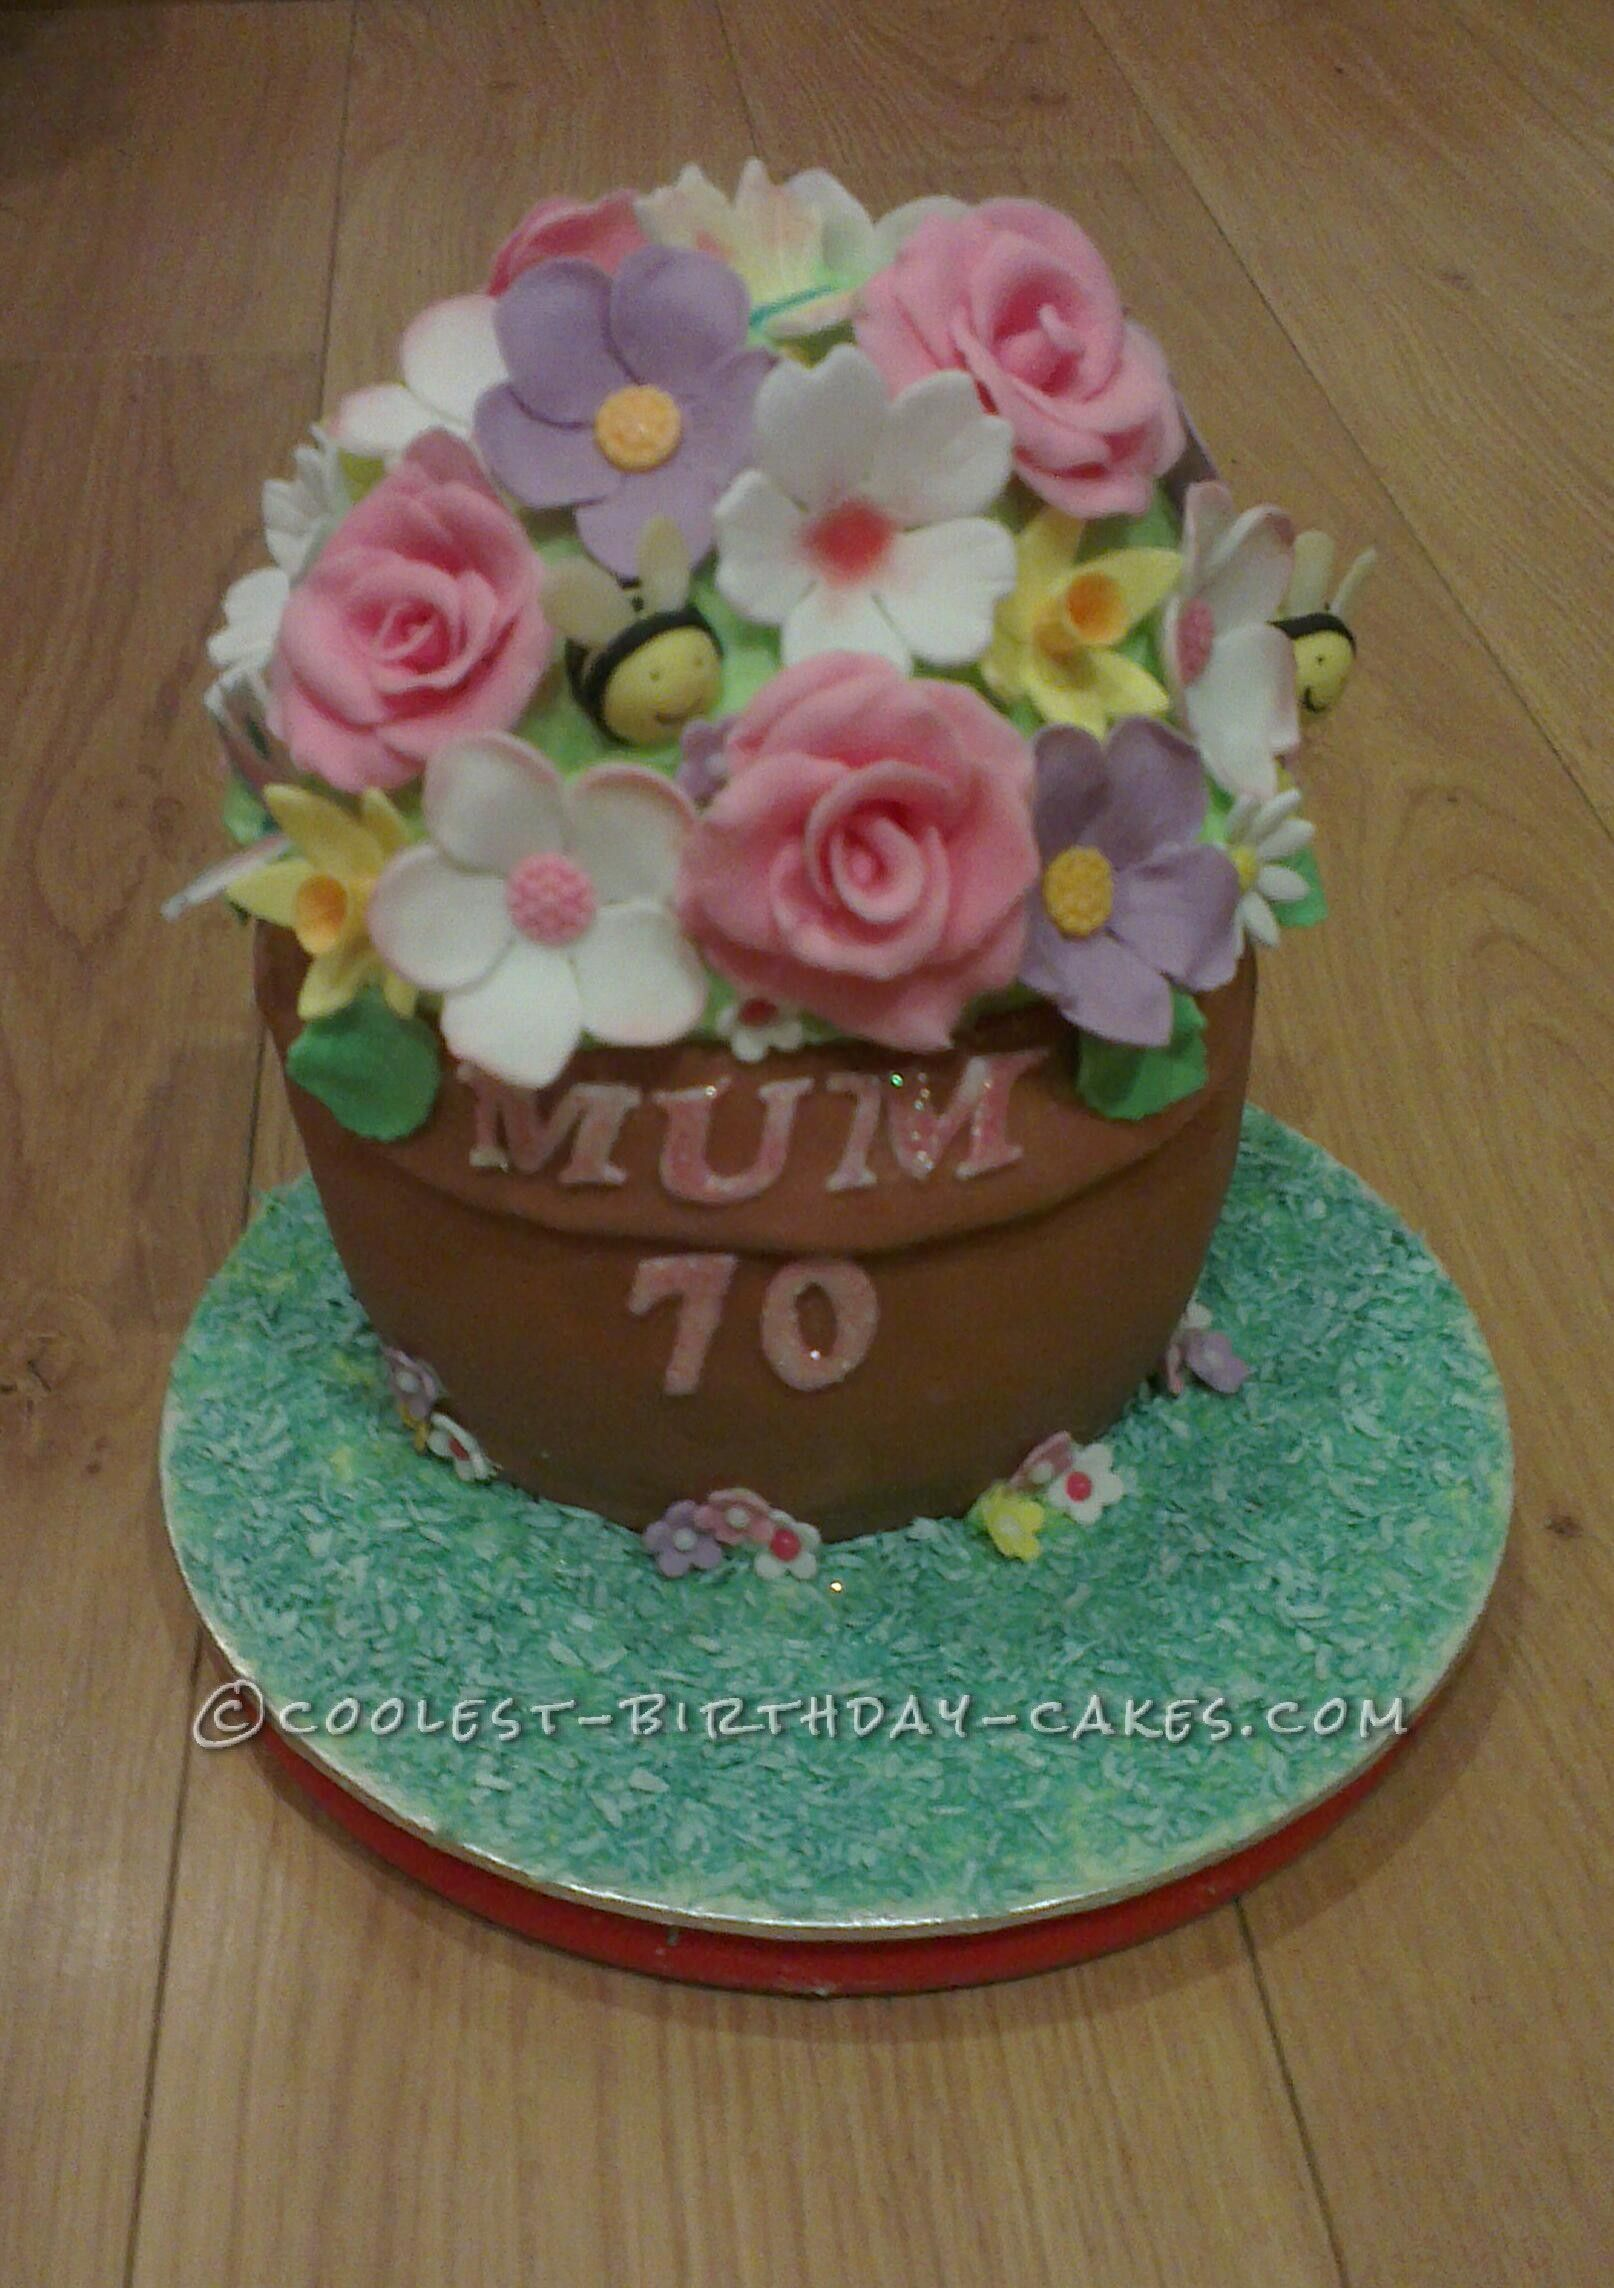 Coolest Flowerpot Cake... This website is the Pinterest of birthday cake ideas